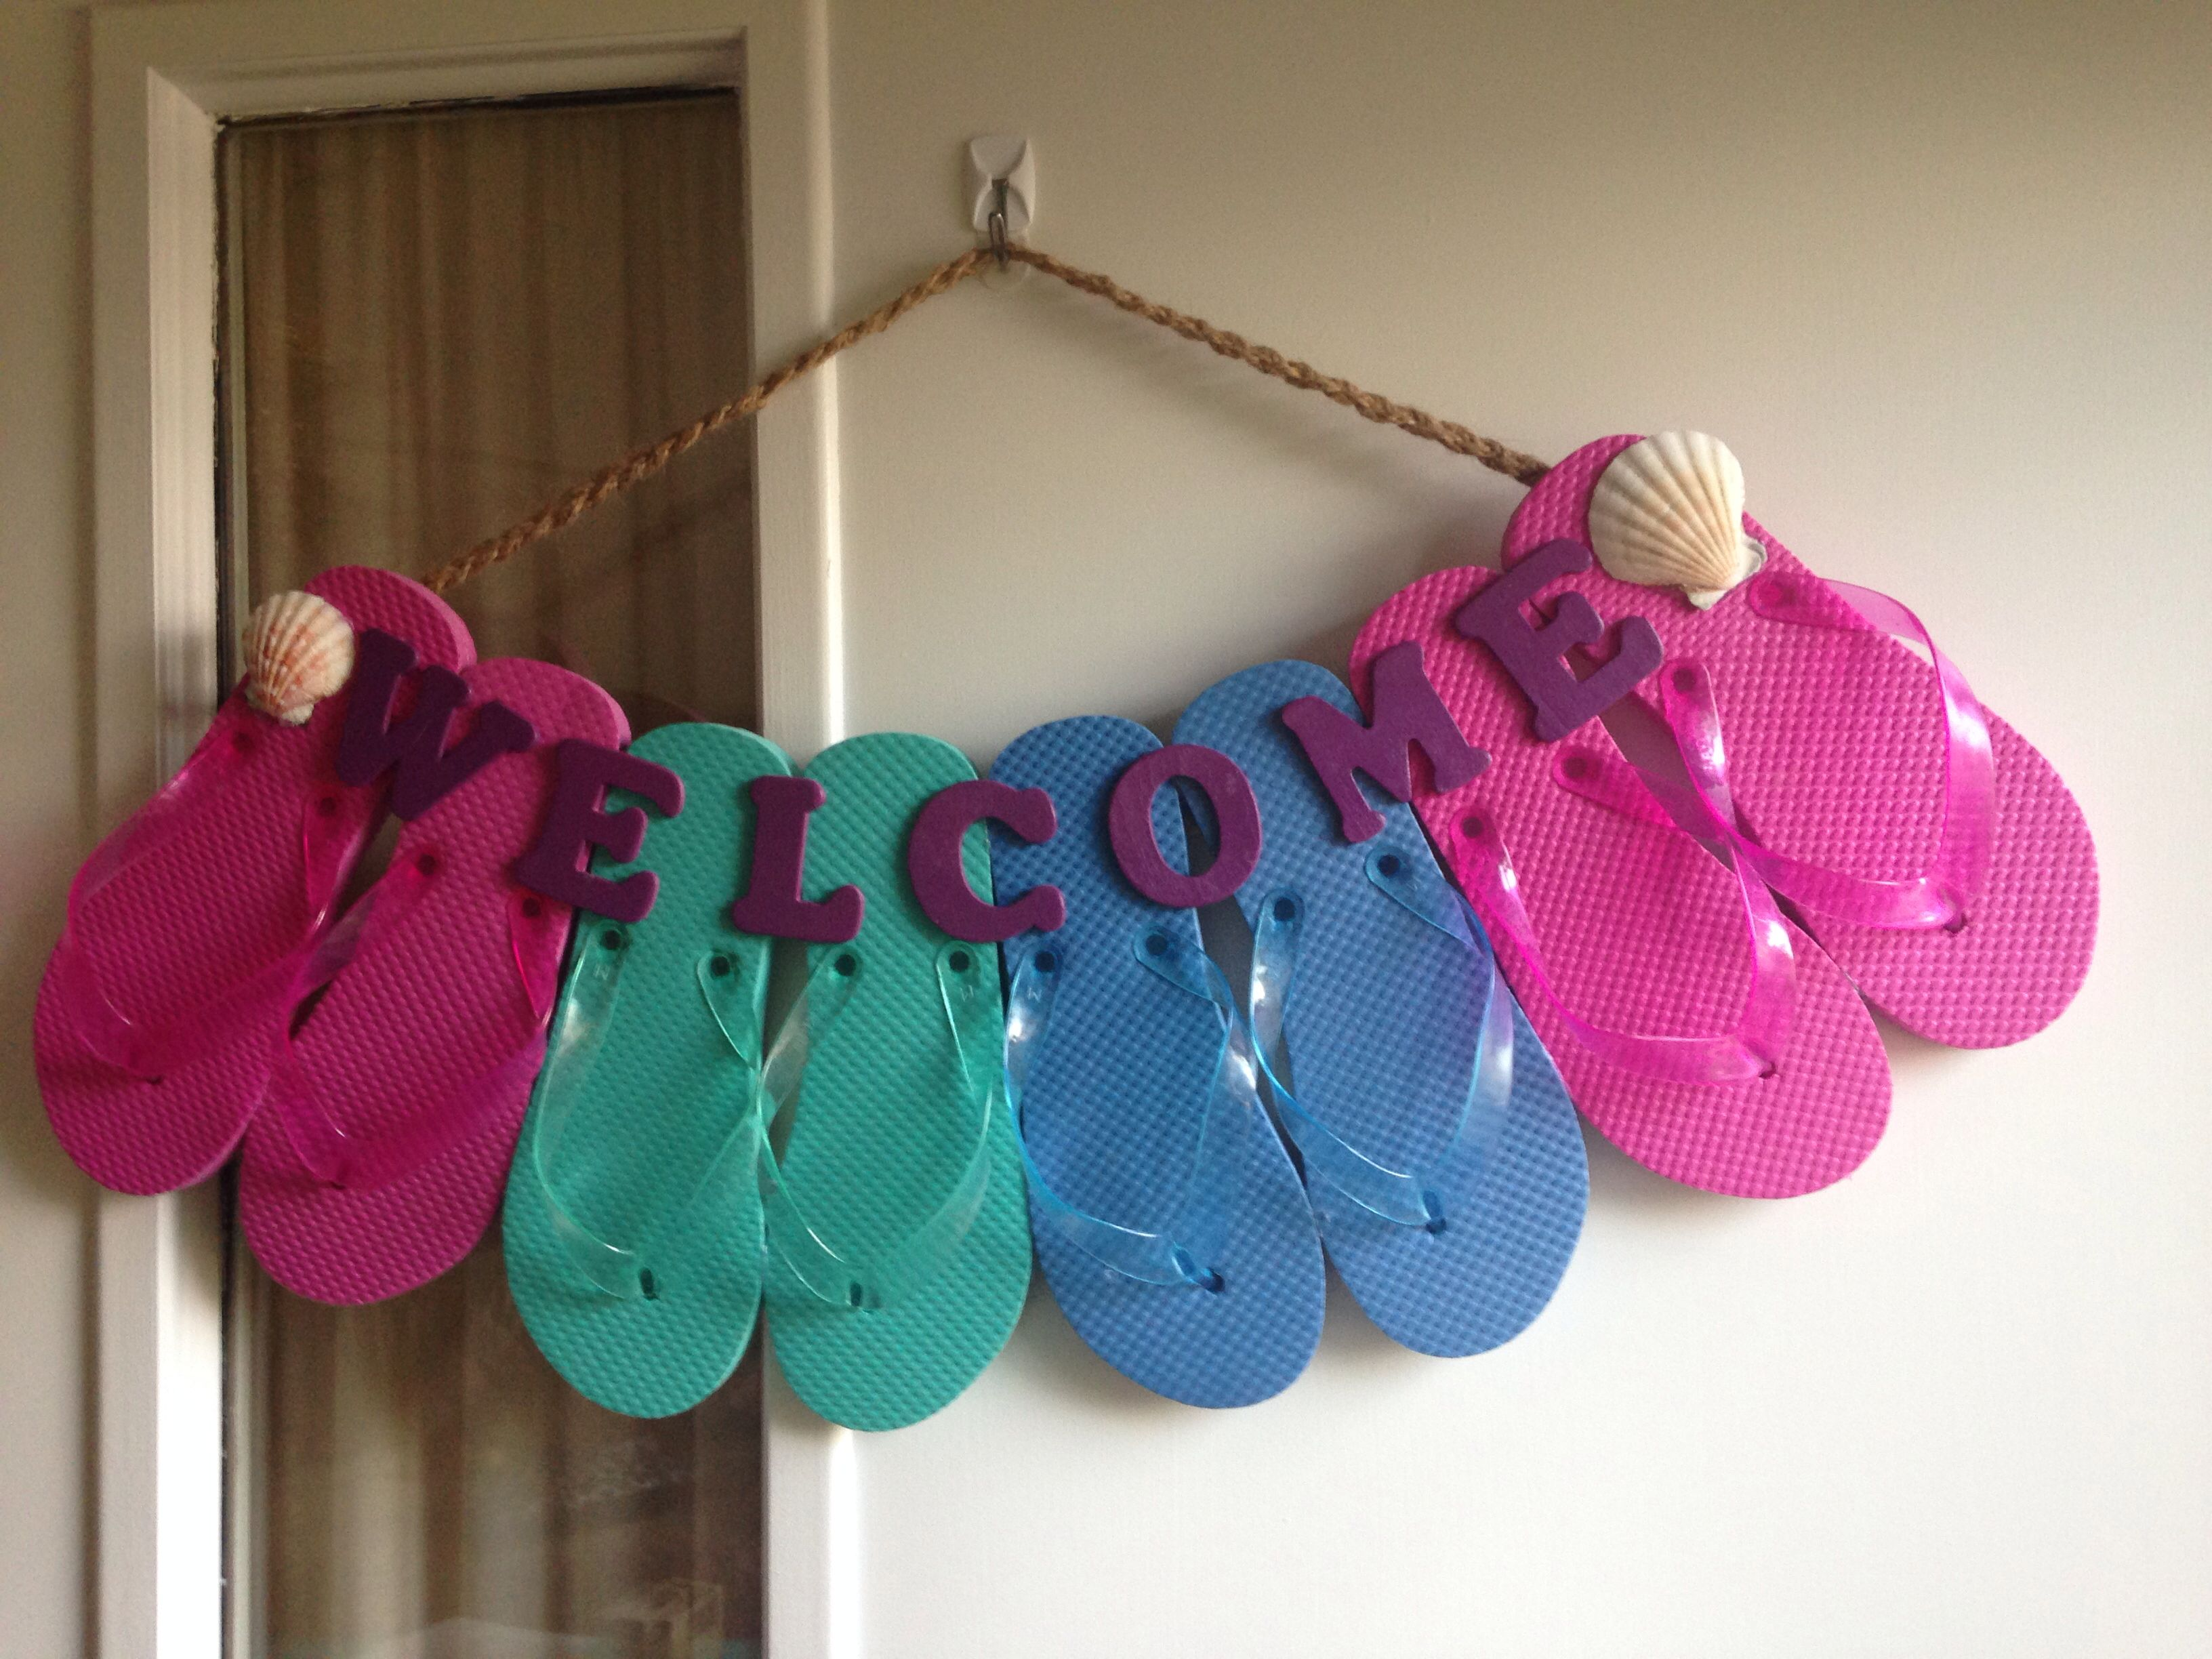 flip hollyshome family life decor best flop of flops ideas decorating with ribbon